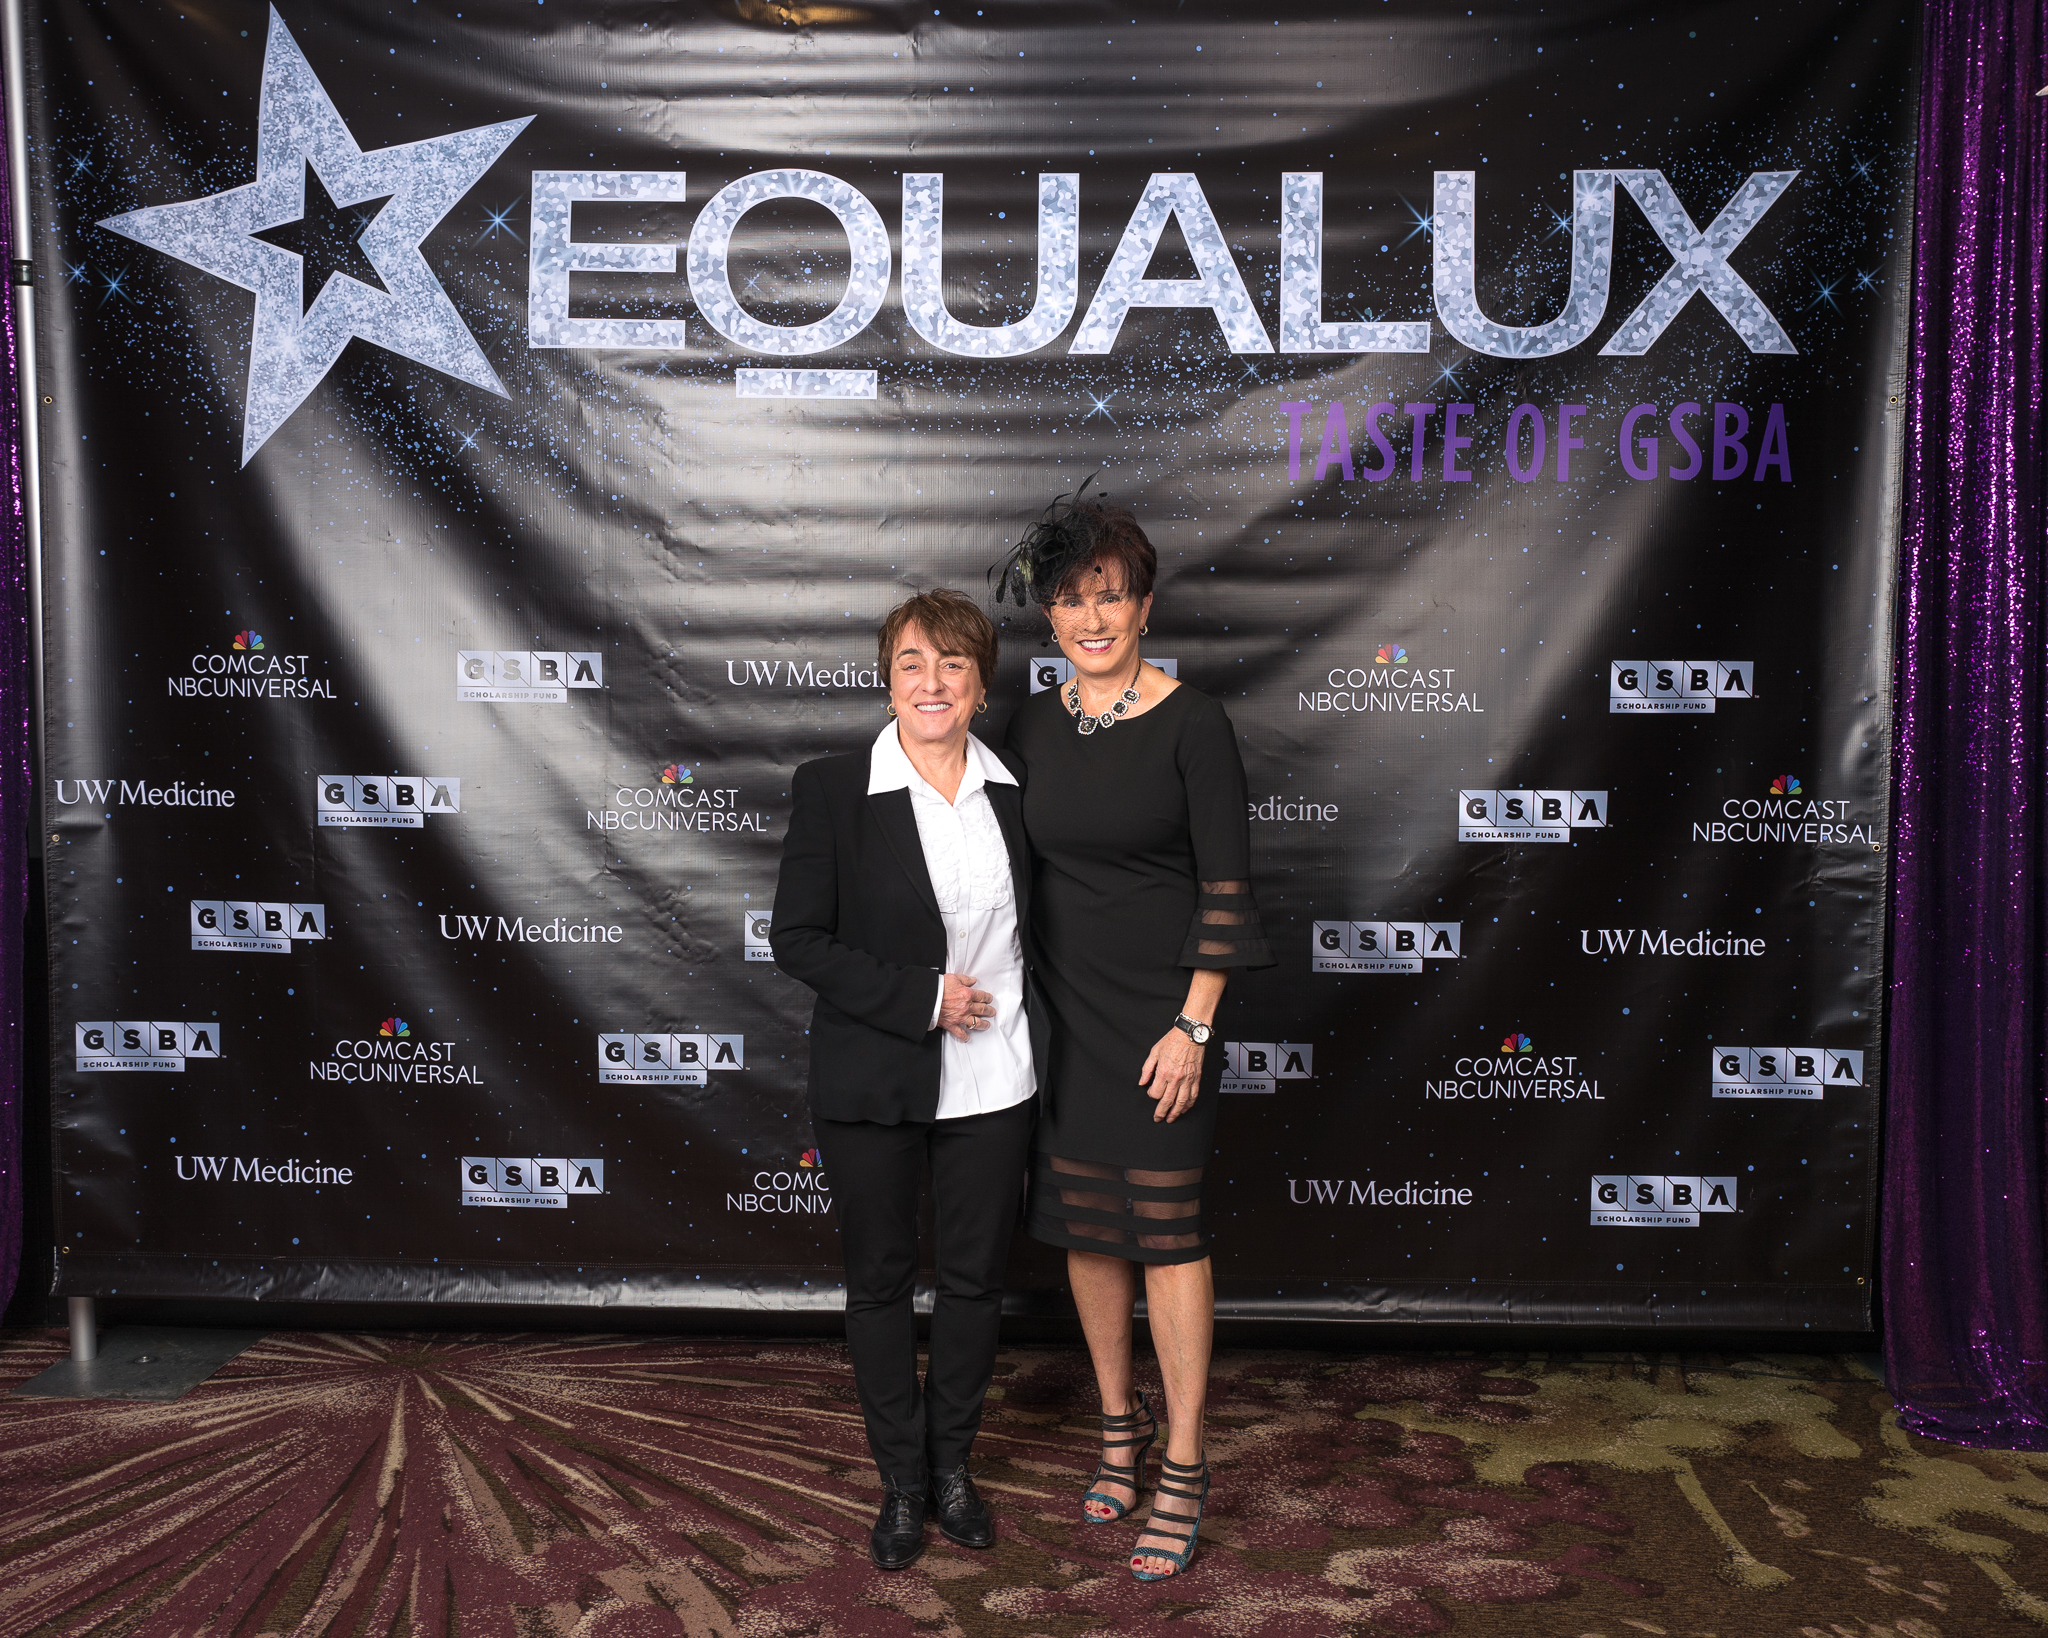 111718_GSBA EQUALUX at The Westin Seattle (Credit- Nate Gowdy)-105.jpg